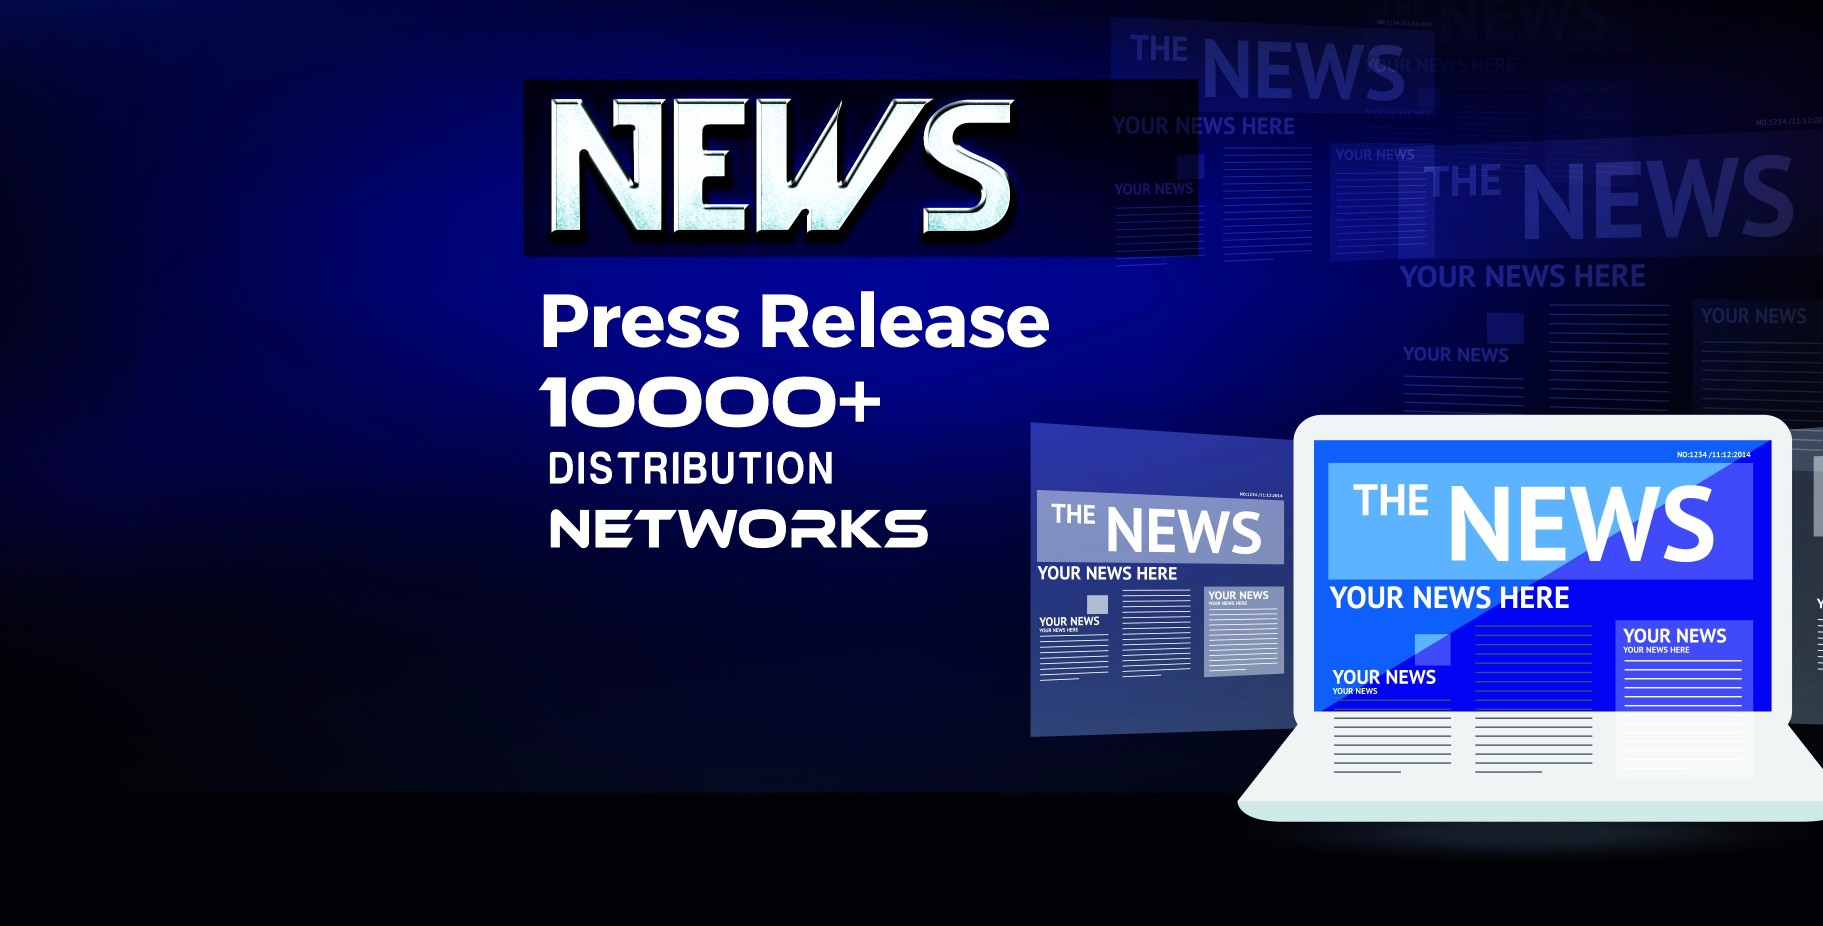 press release distribution